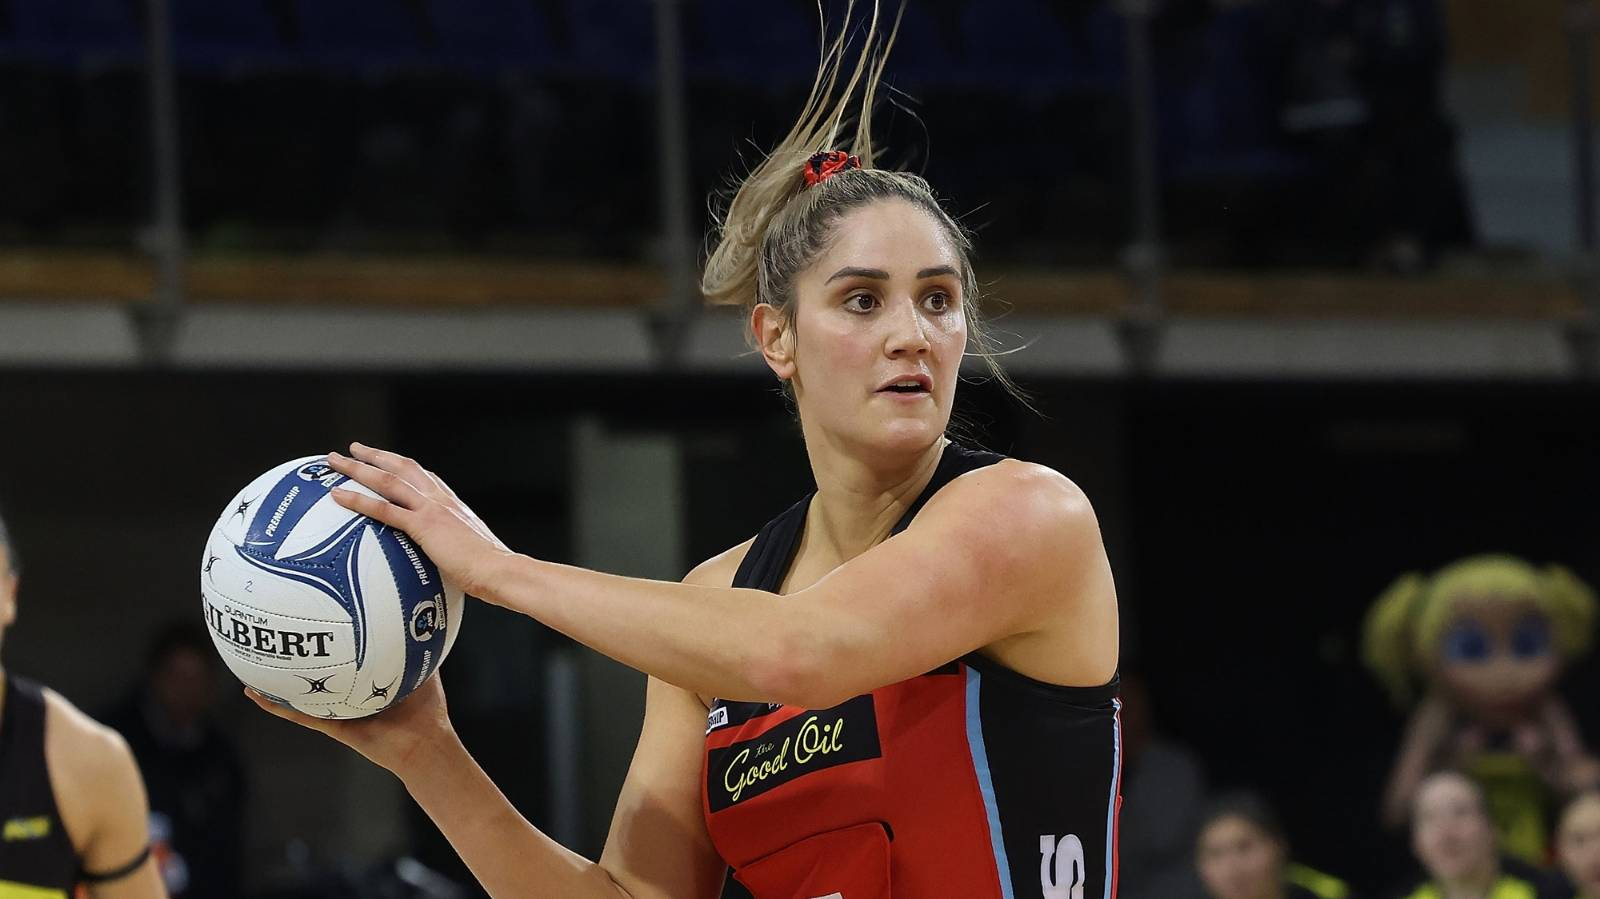 Selby-Rickit sisterly battle looms in elimination final